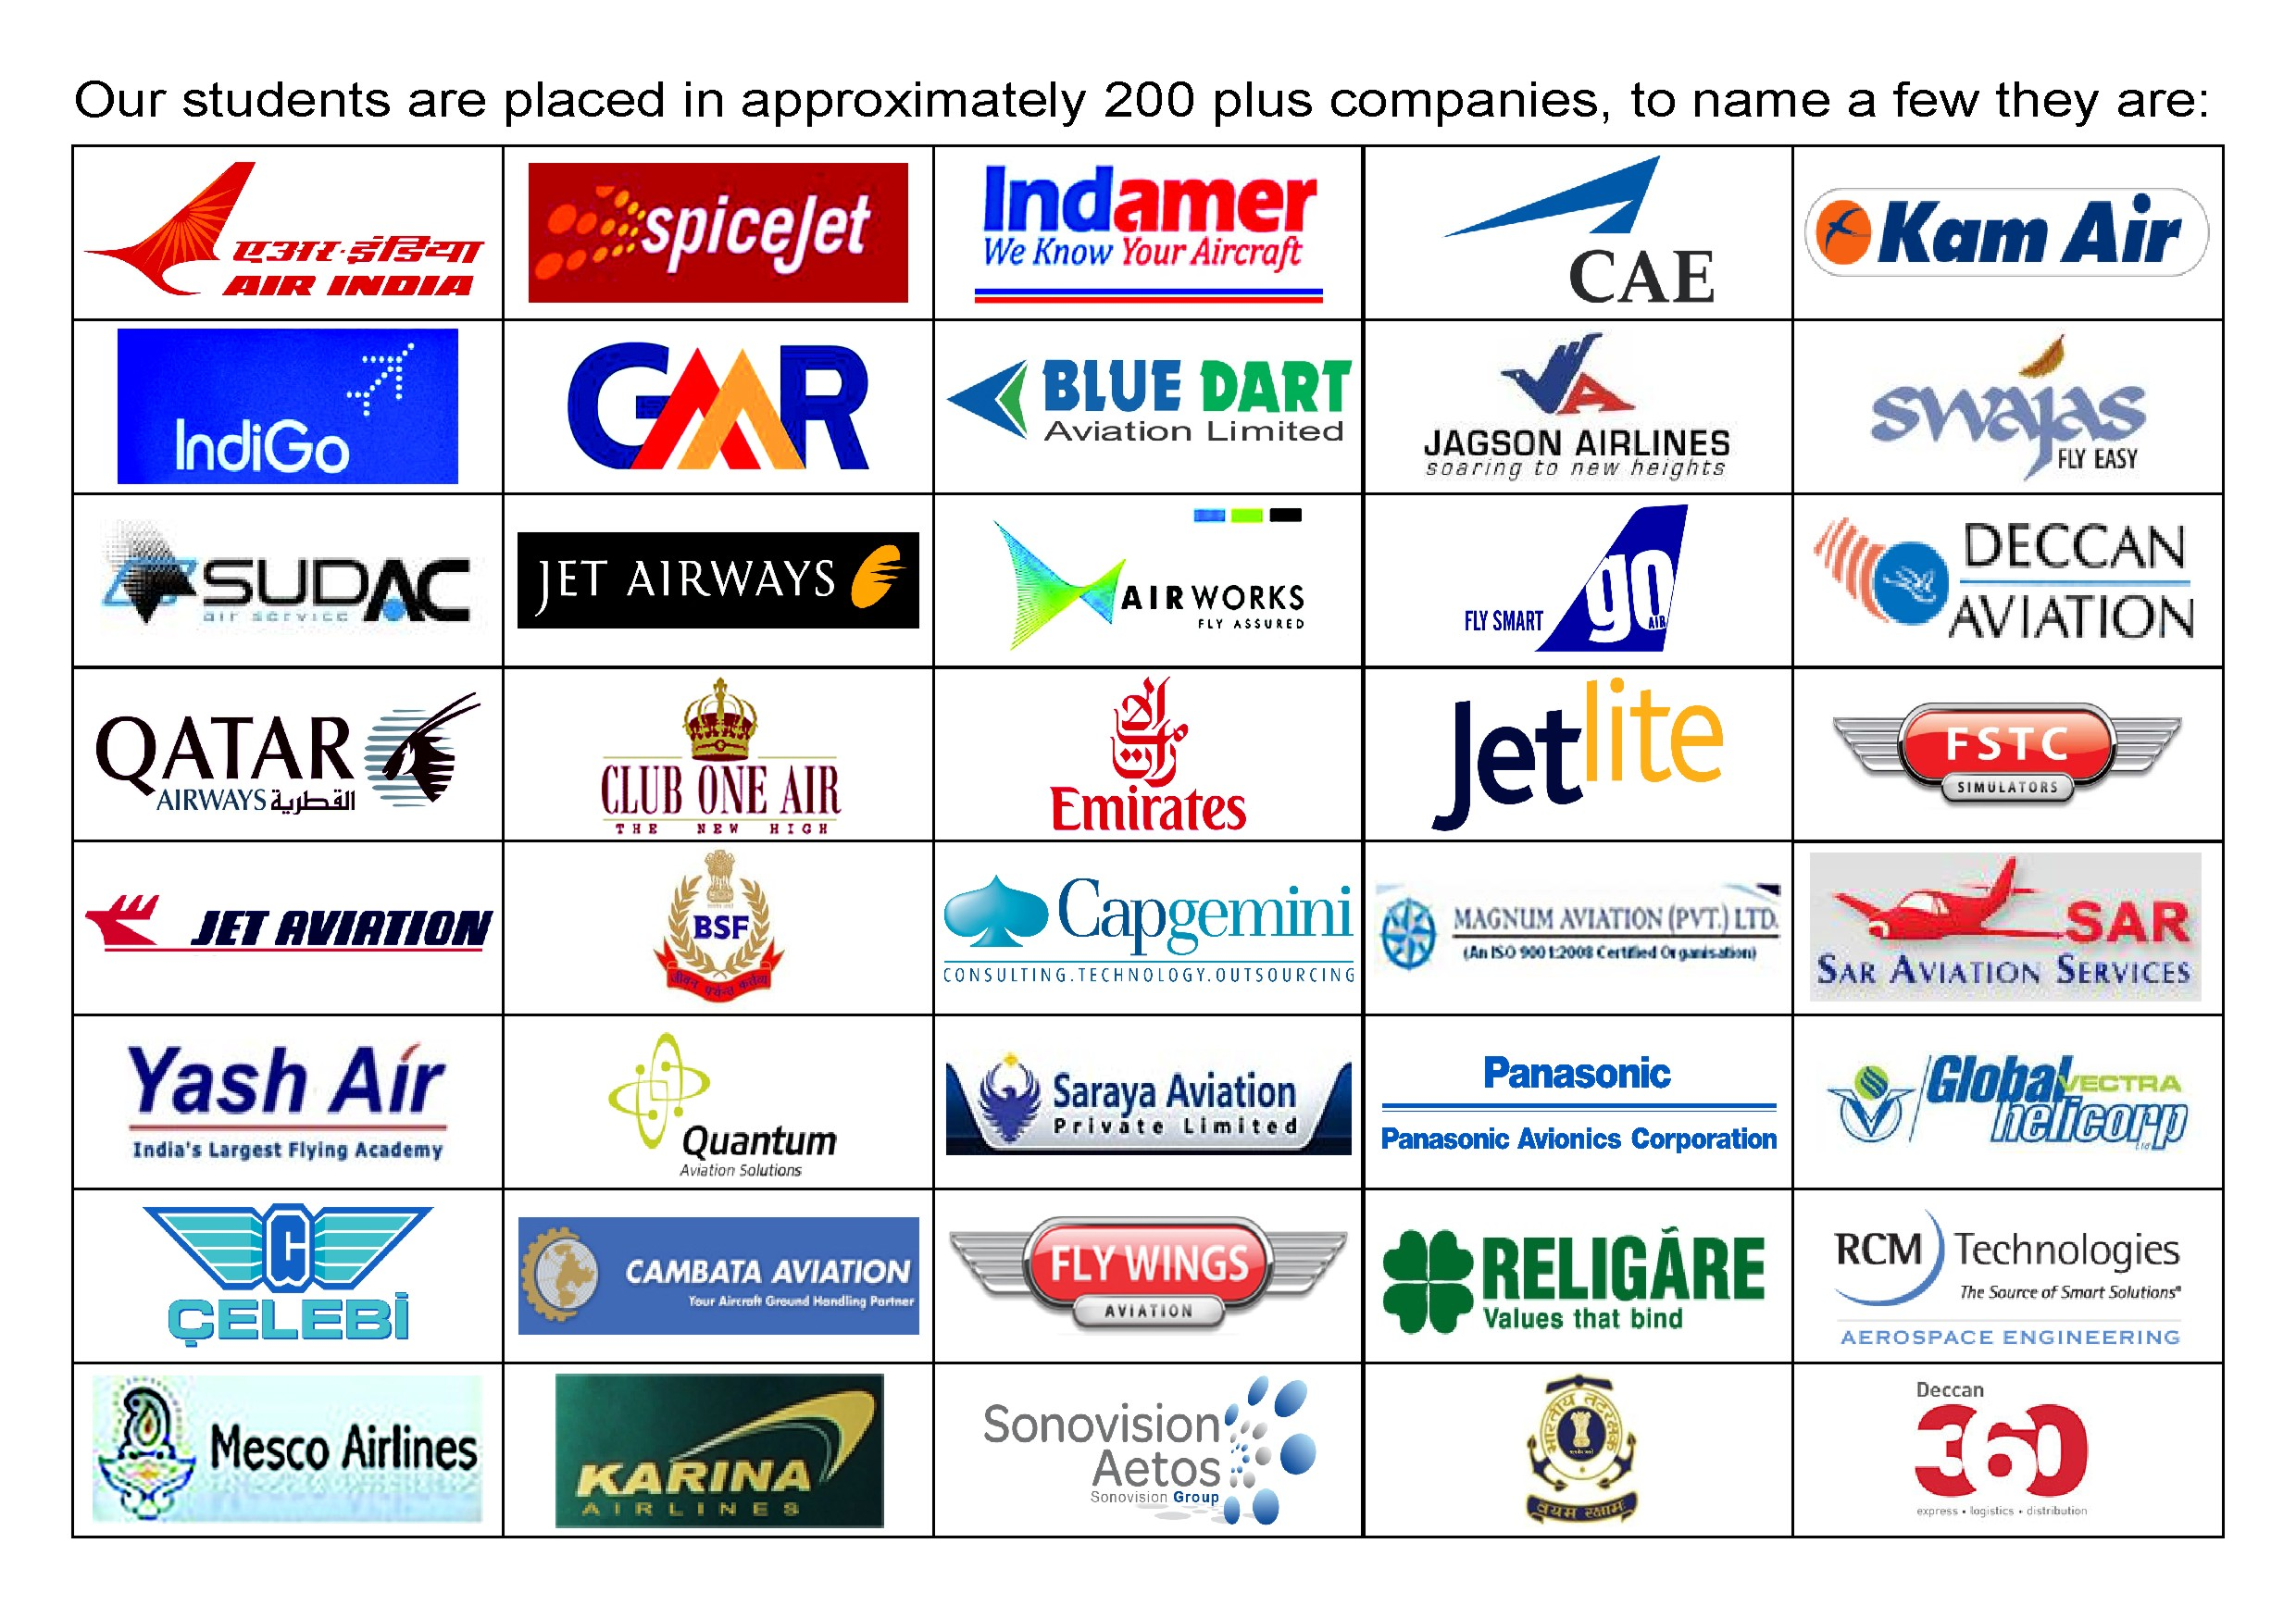 OUR STUDENTS OF AERONAUTICAL ENGINEERING & AIRCRAFT MAINTENANCE ENGINEERING ARE WORKING IN 200 PLUS COMPANIES